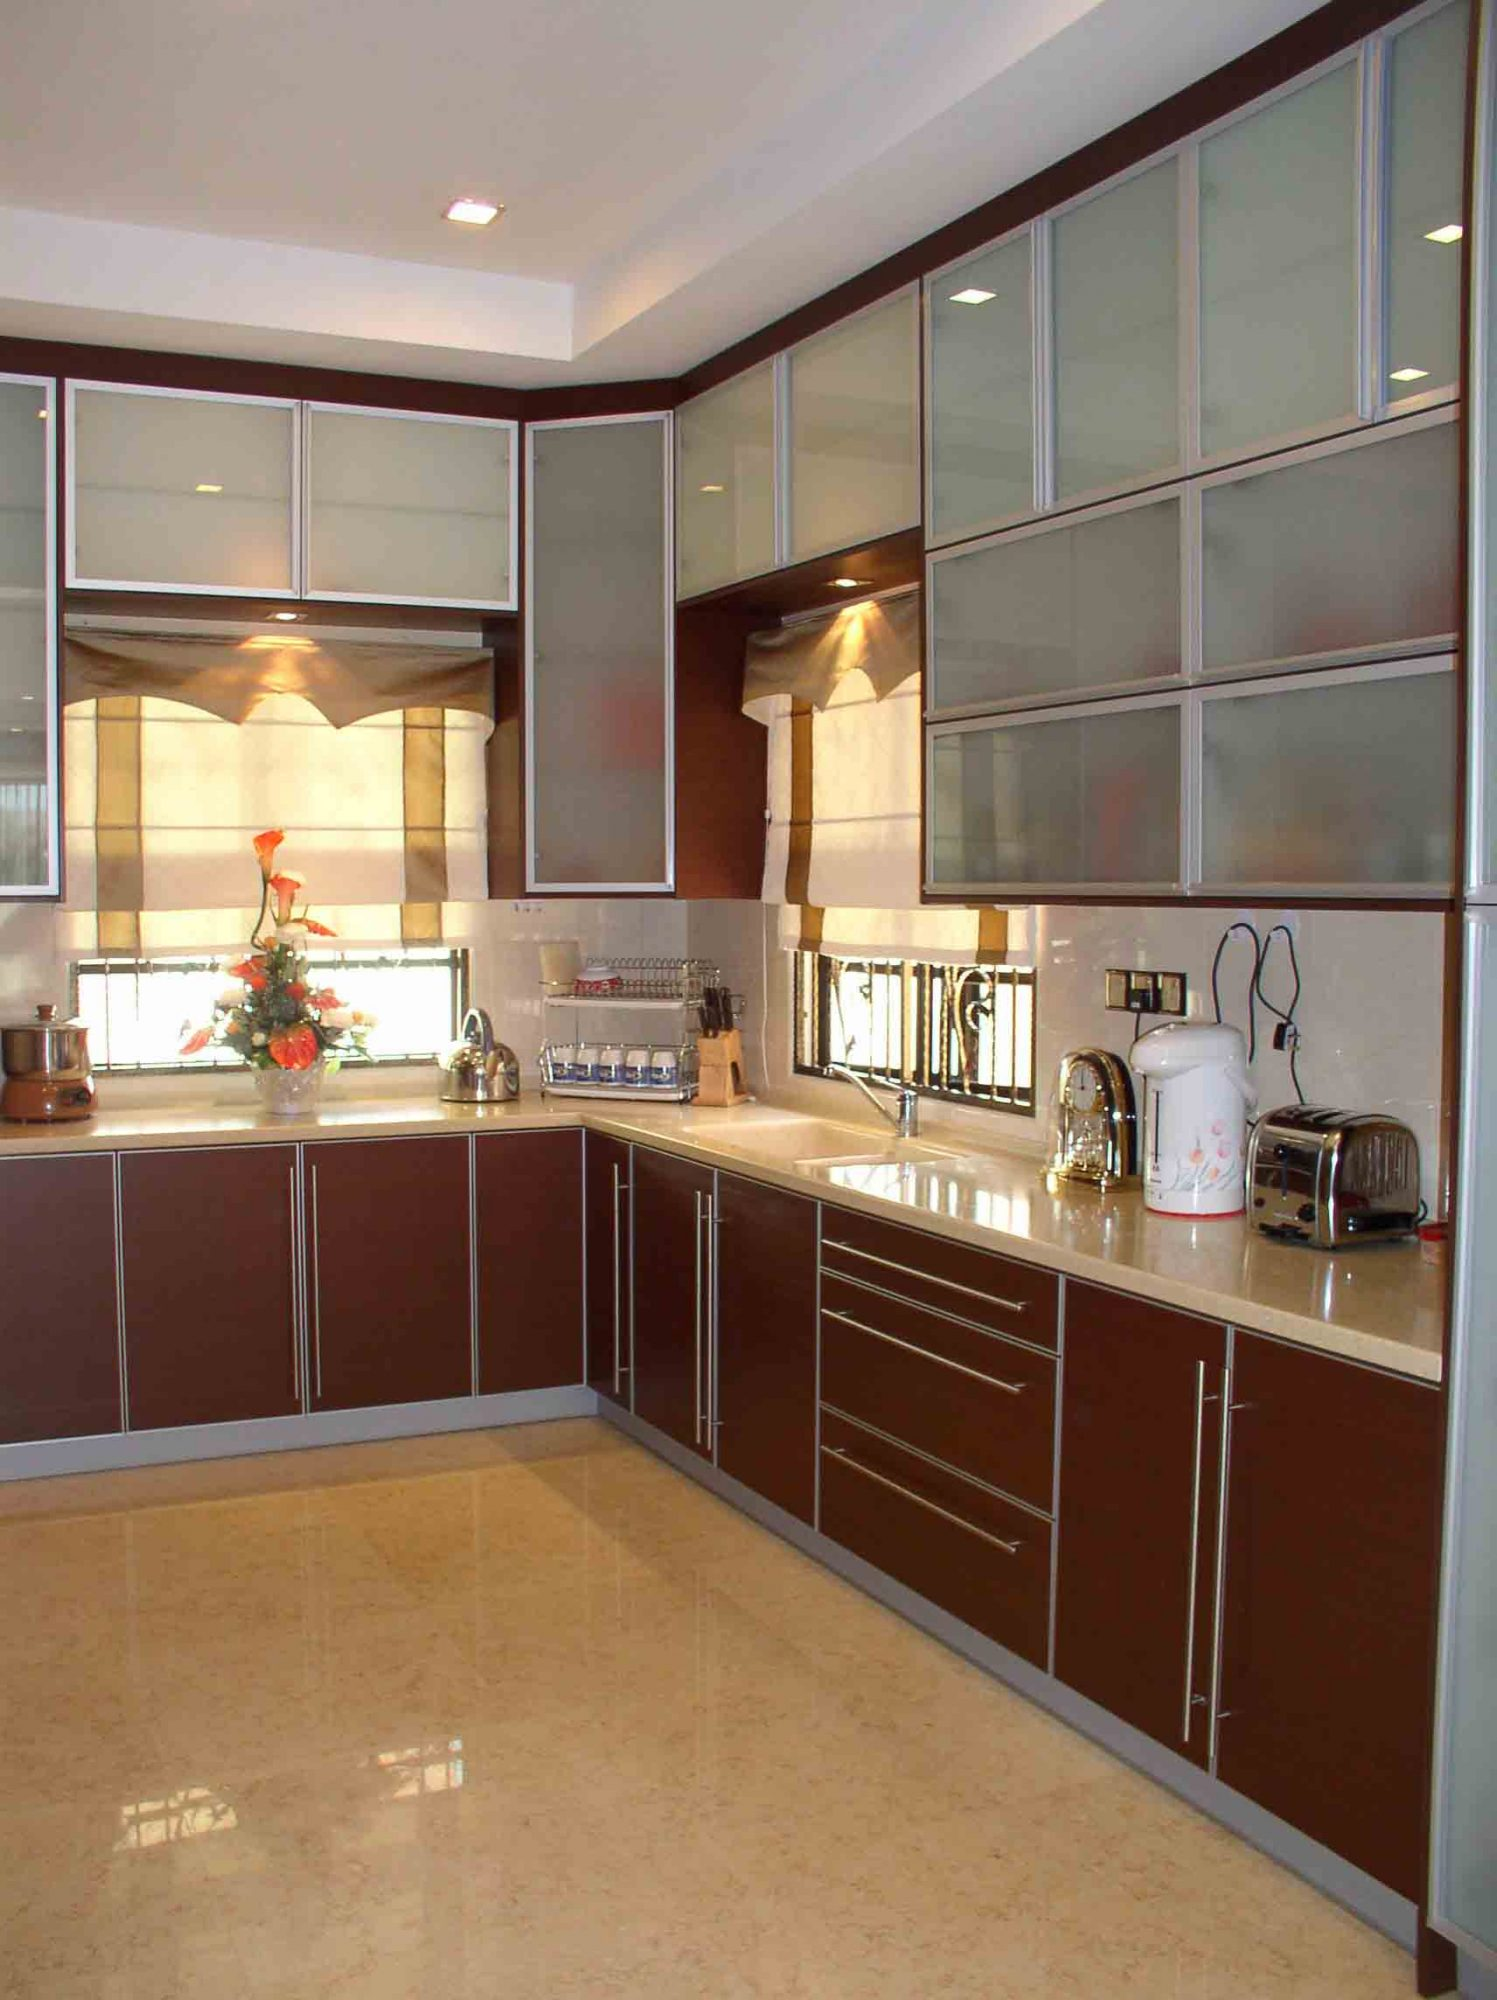 20 Popular Kitchen Cabinet Designs In Malaysia